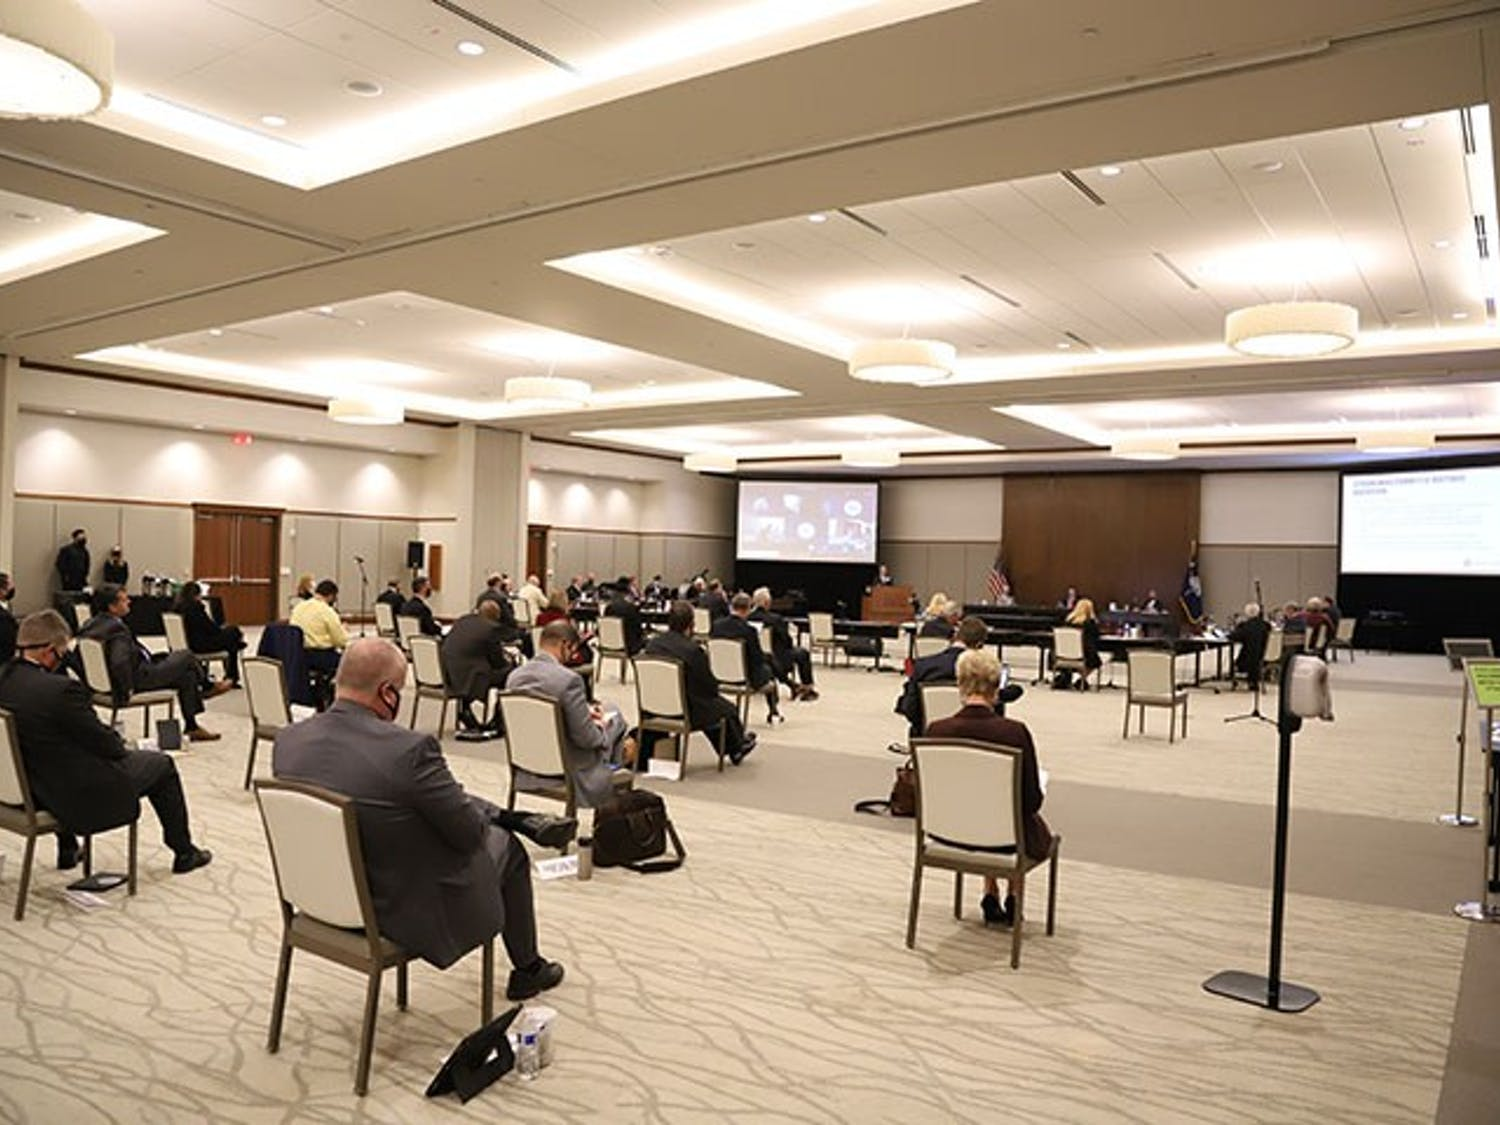 The board of trustees meeting in the Alumni Center ballroom on Friday, Oct. 9. The room had chairs spread out due to COVID-19 requirements, and the attendees wore masks.